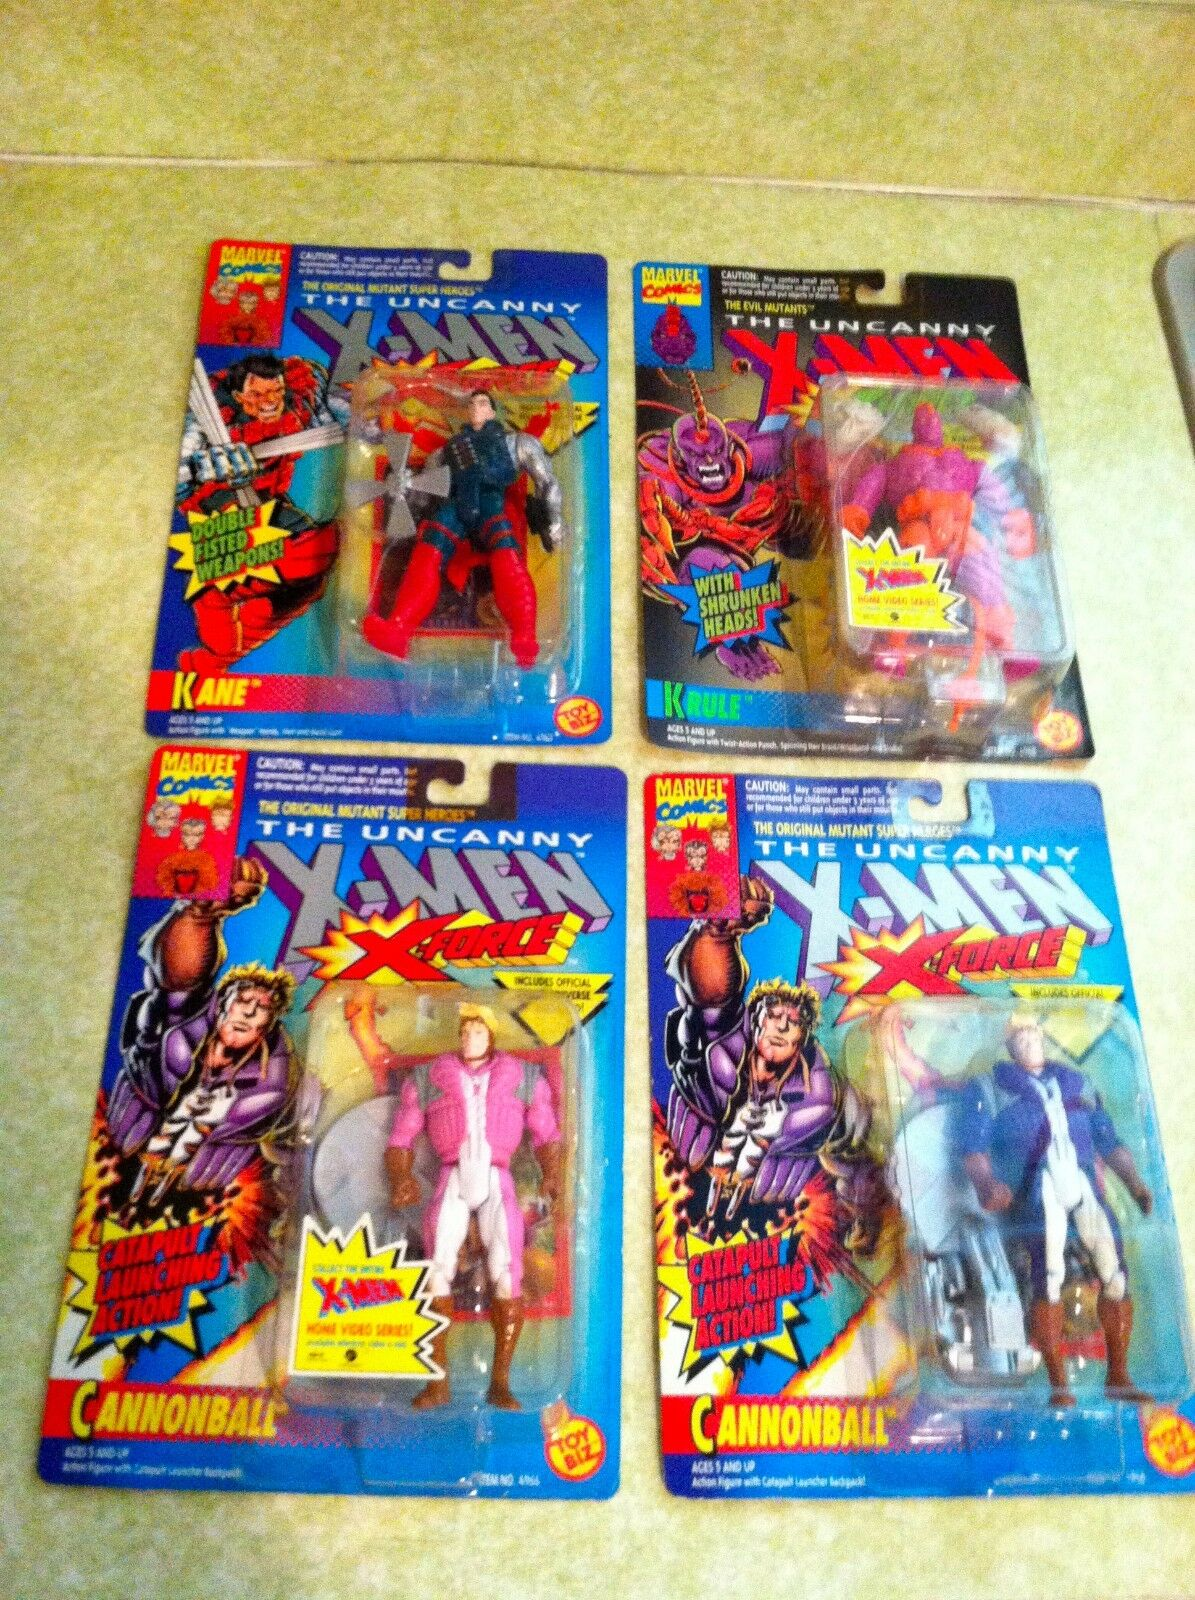 TOY BIZ X men X force (set of 4) (make offer 4 1) pink cannonball, kane, krule